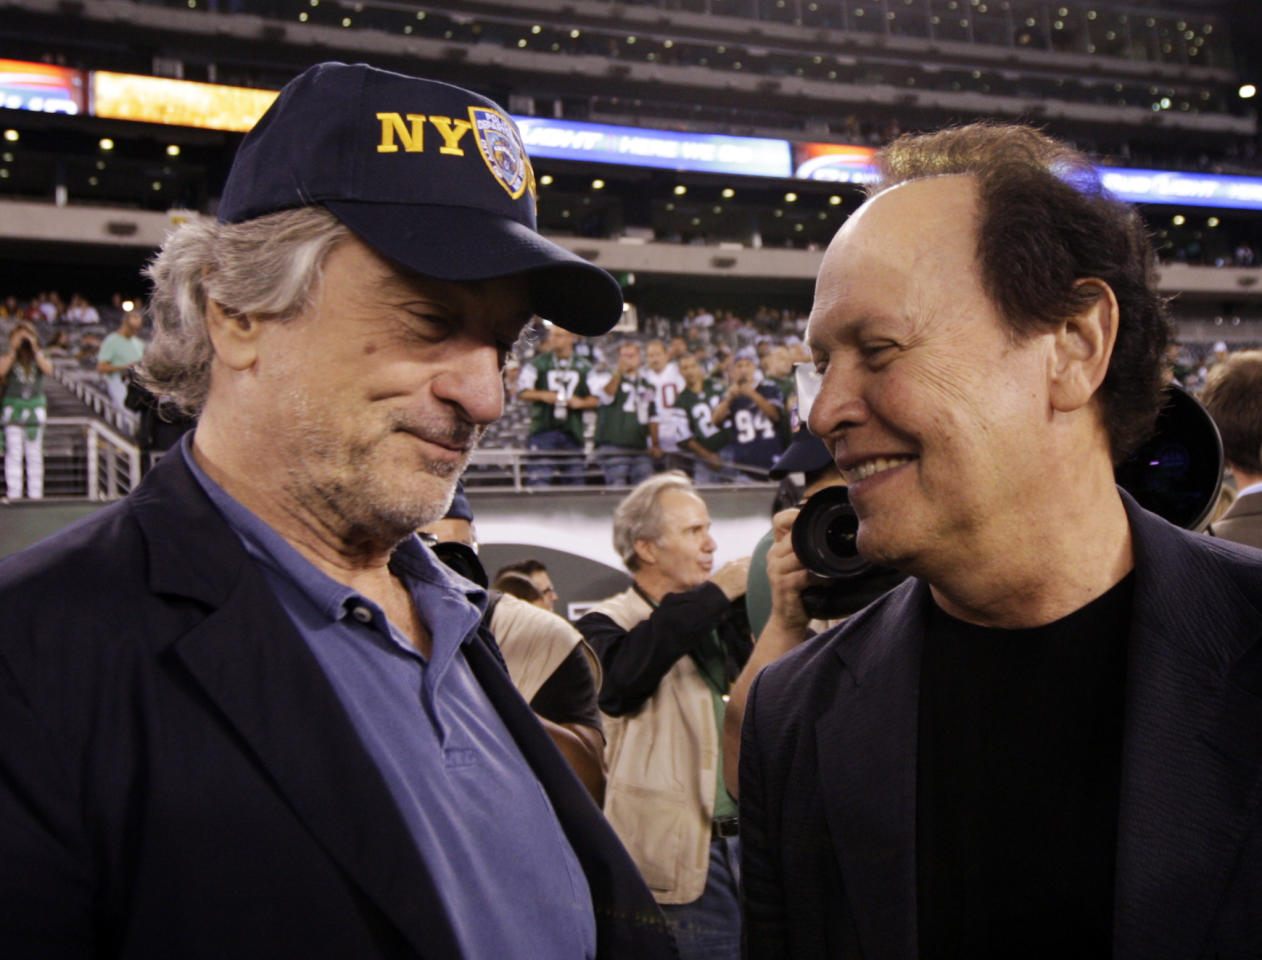 Actor Robert DeNiro, left, chats with actor Billy Crystal before an NFL football game between the Dallas Cowboys and the New York Jets Sunday, Sept. 11, 2011, in East Rutherford, N.J. (AP Photo/Julio Cortez)